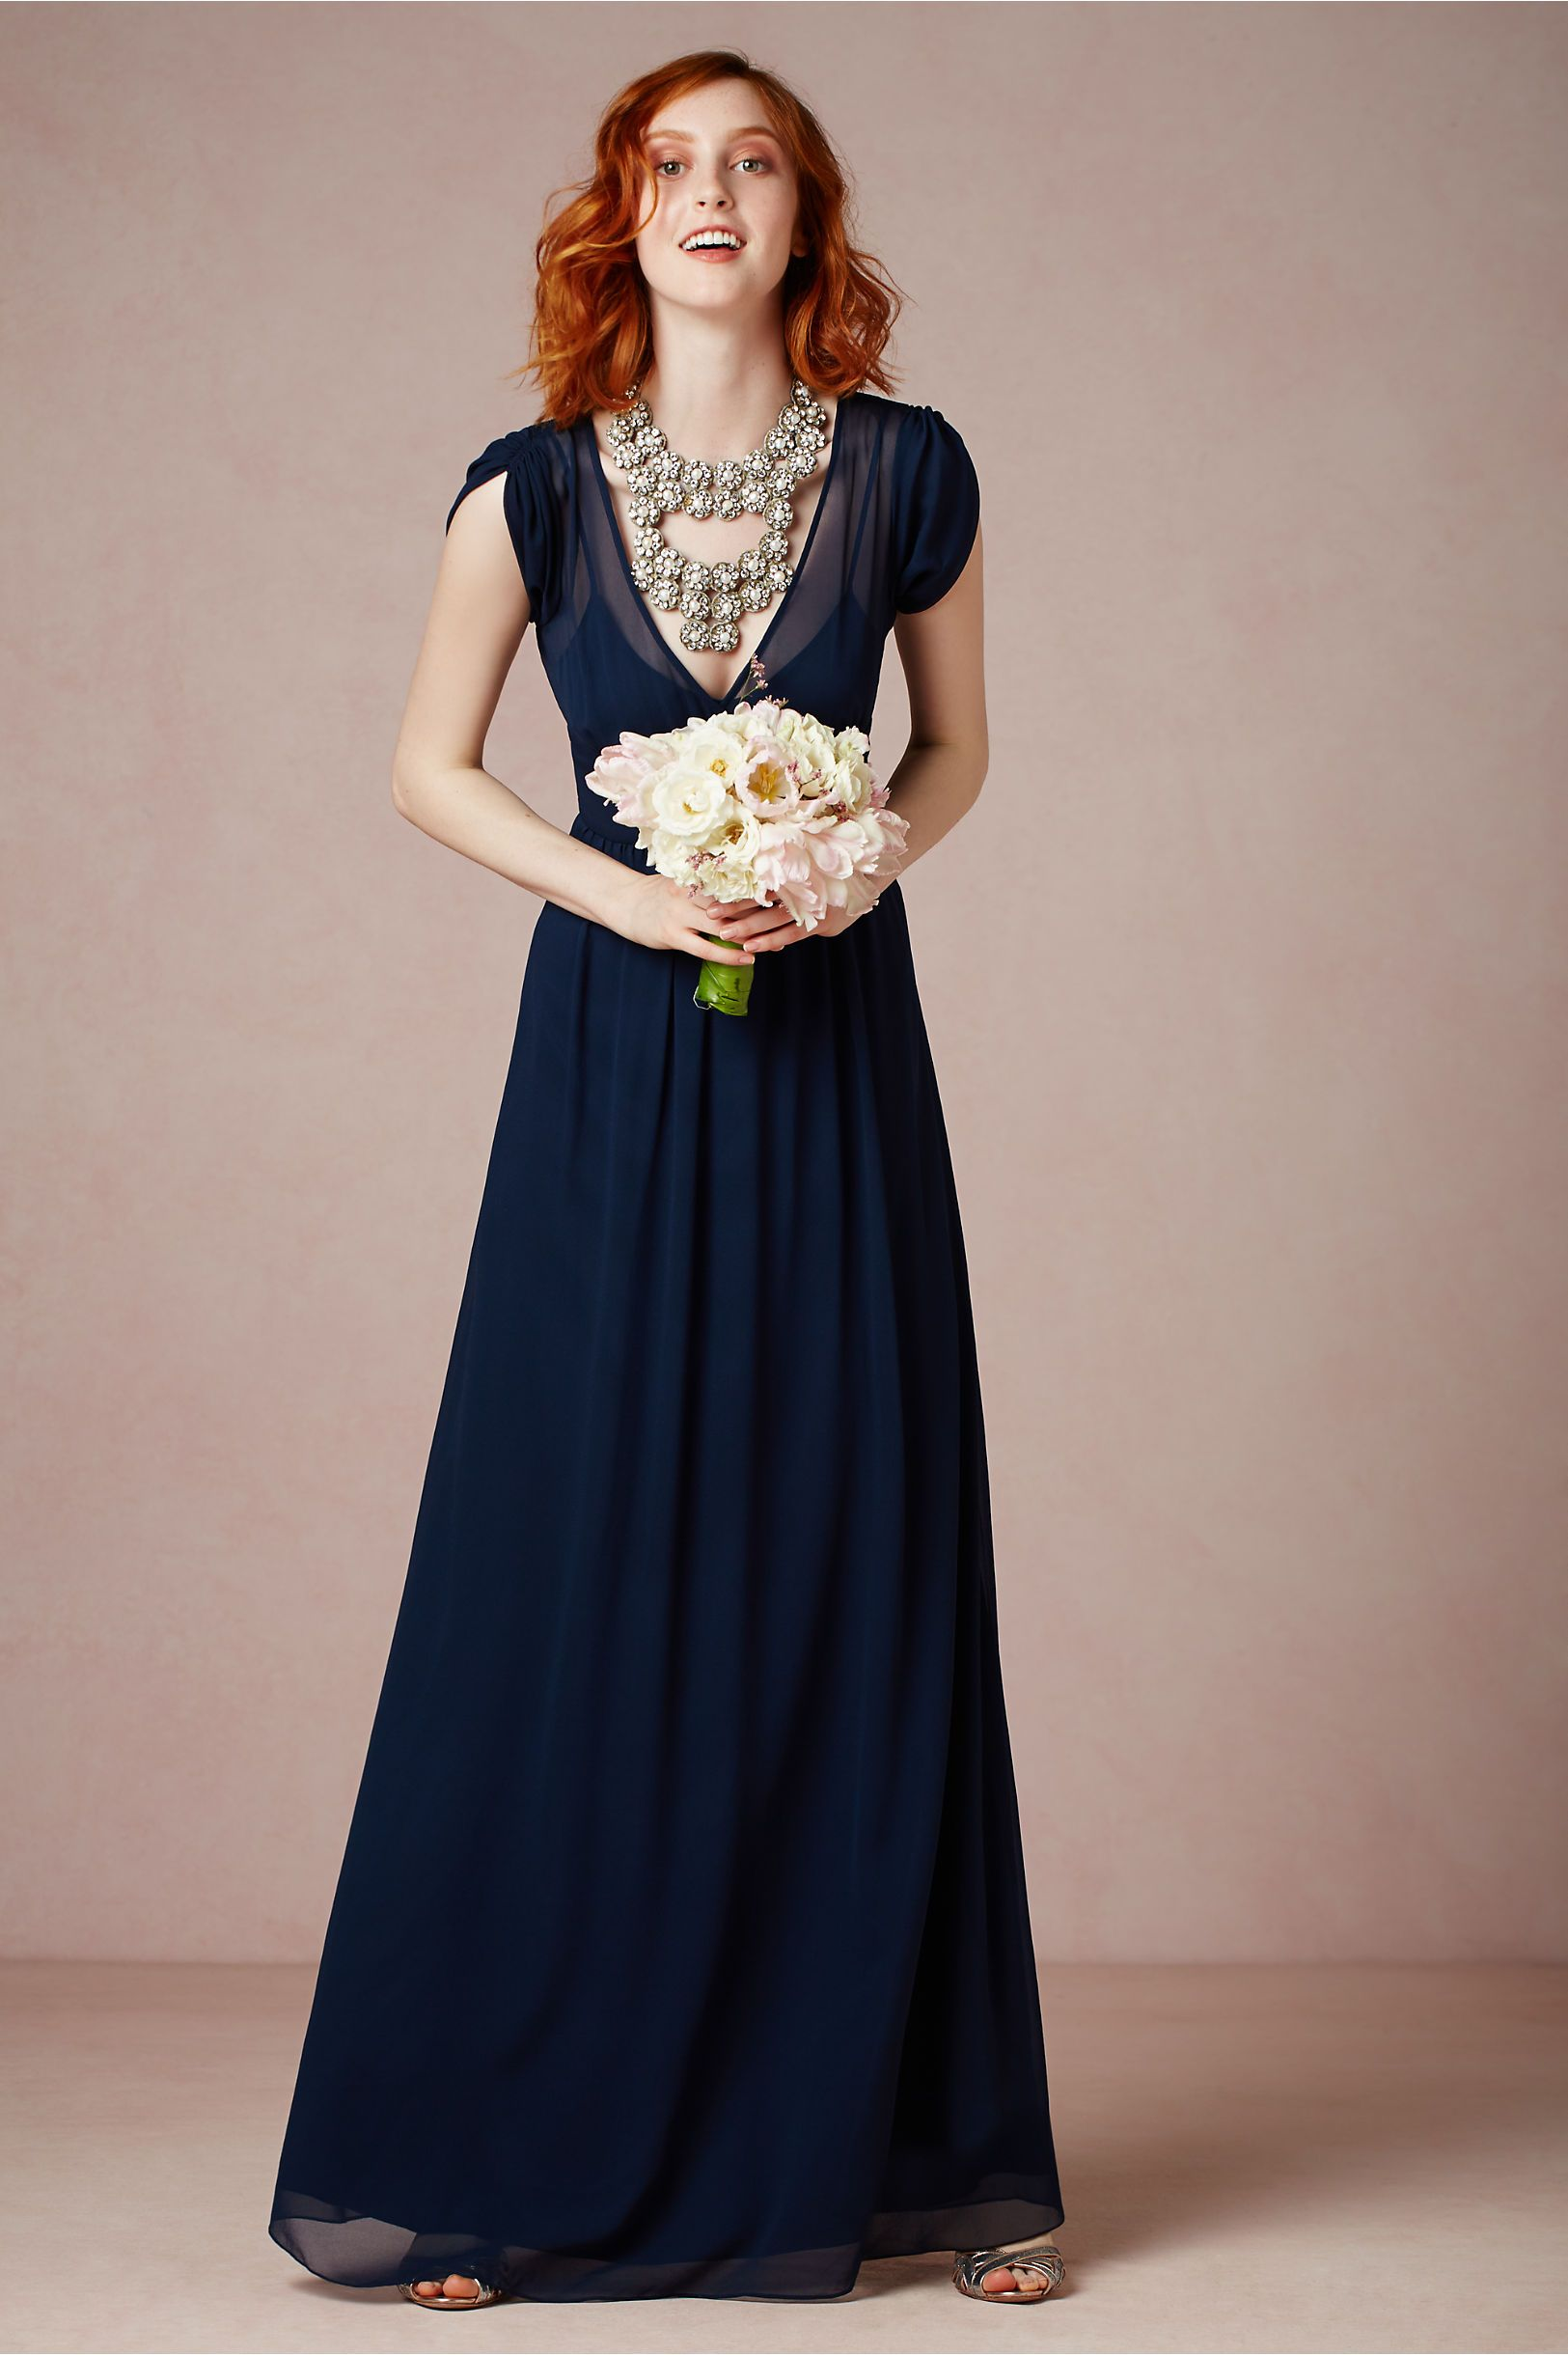 Ava maxi dress in sale dresses at bhldn maid of honor dresses